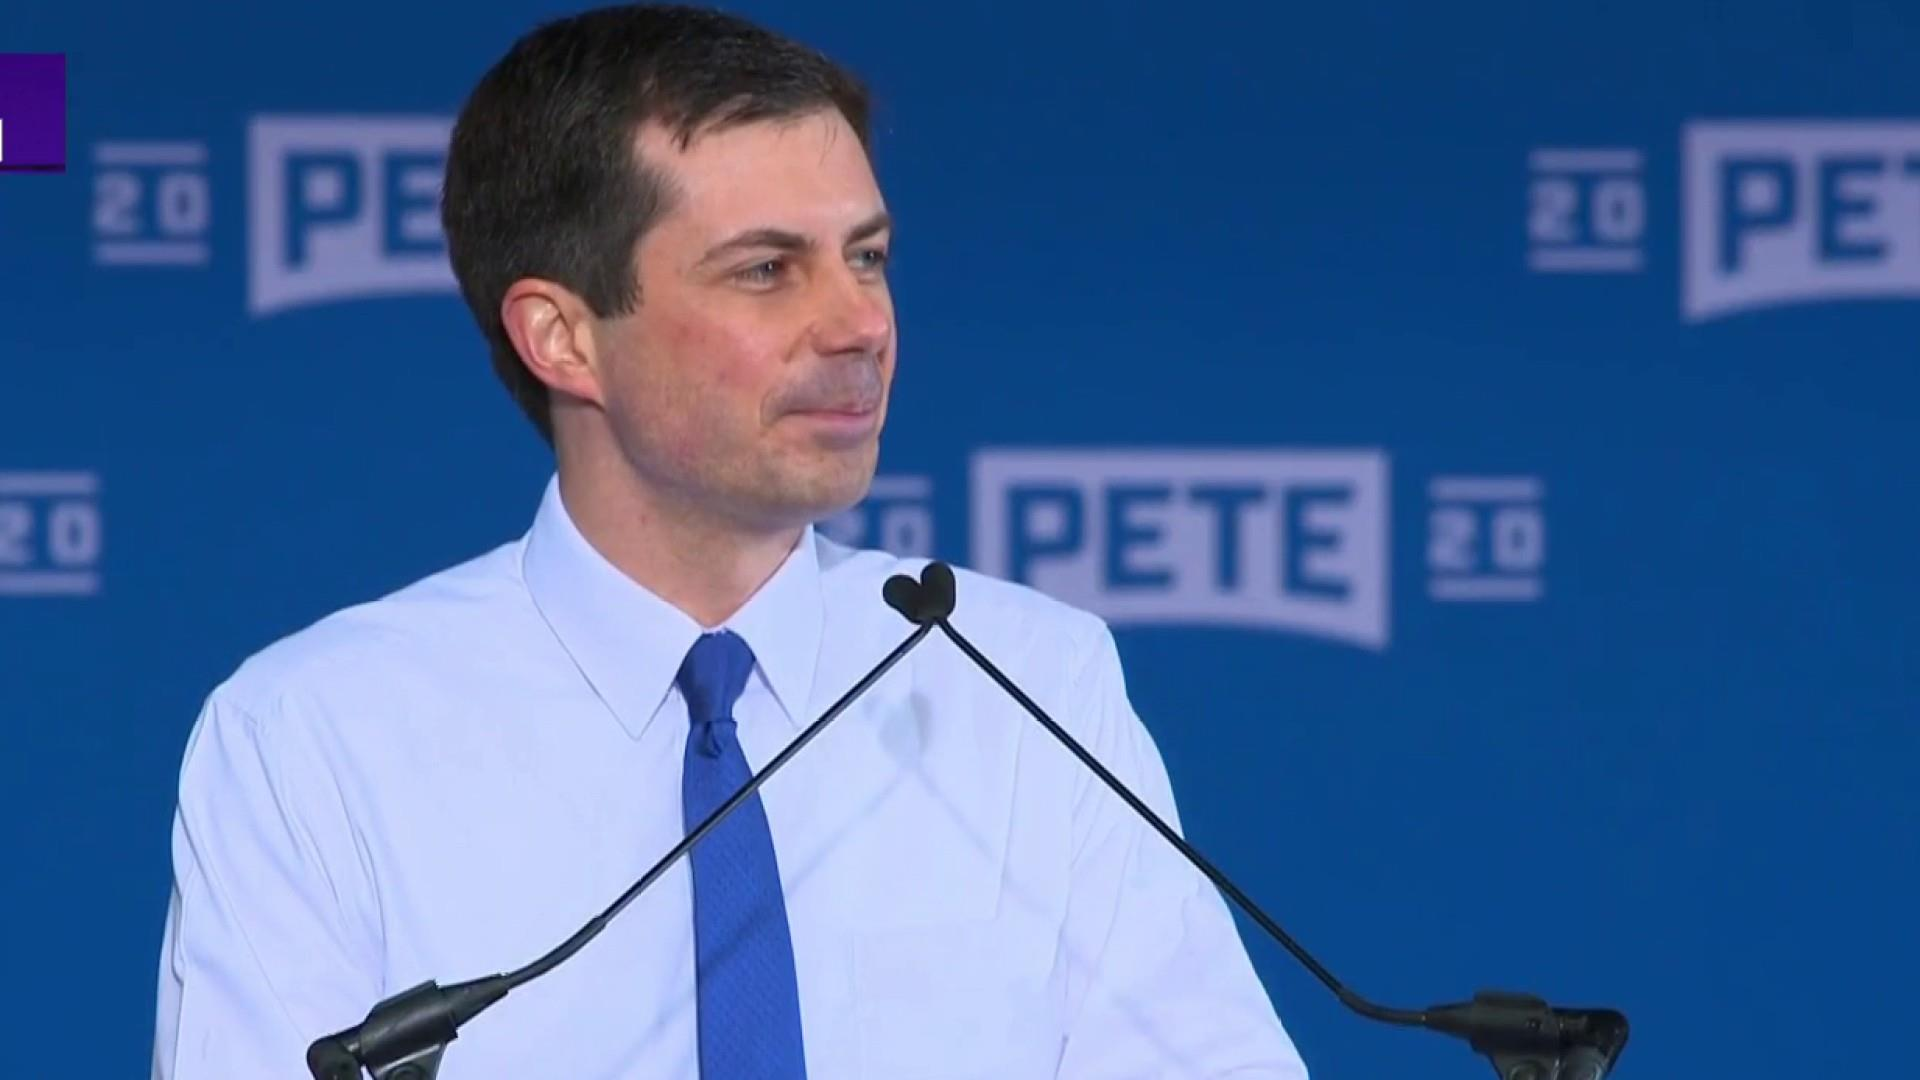 Pete Buttigieg: 'Sometimes a dark moment brings out the best in us'